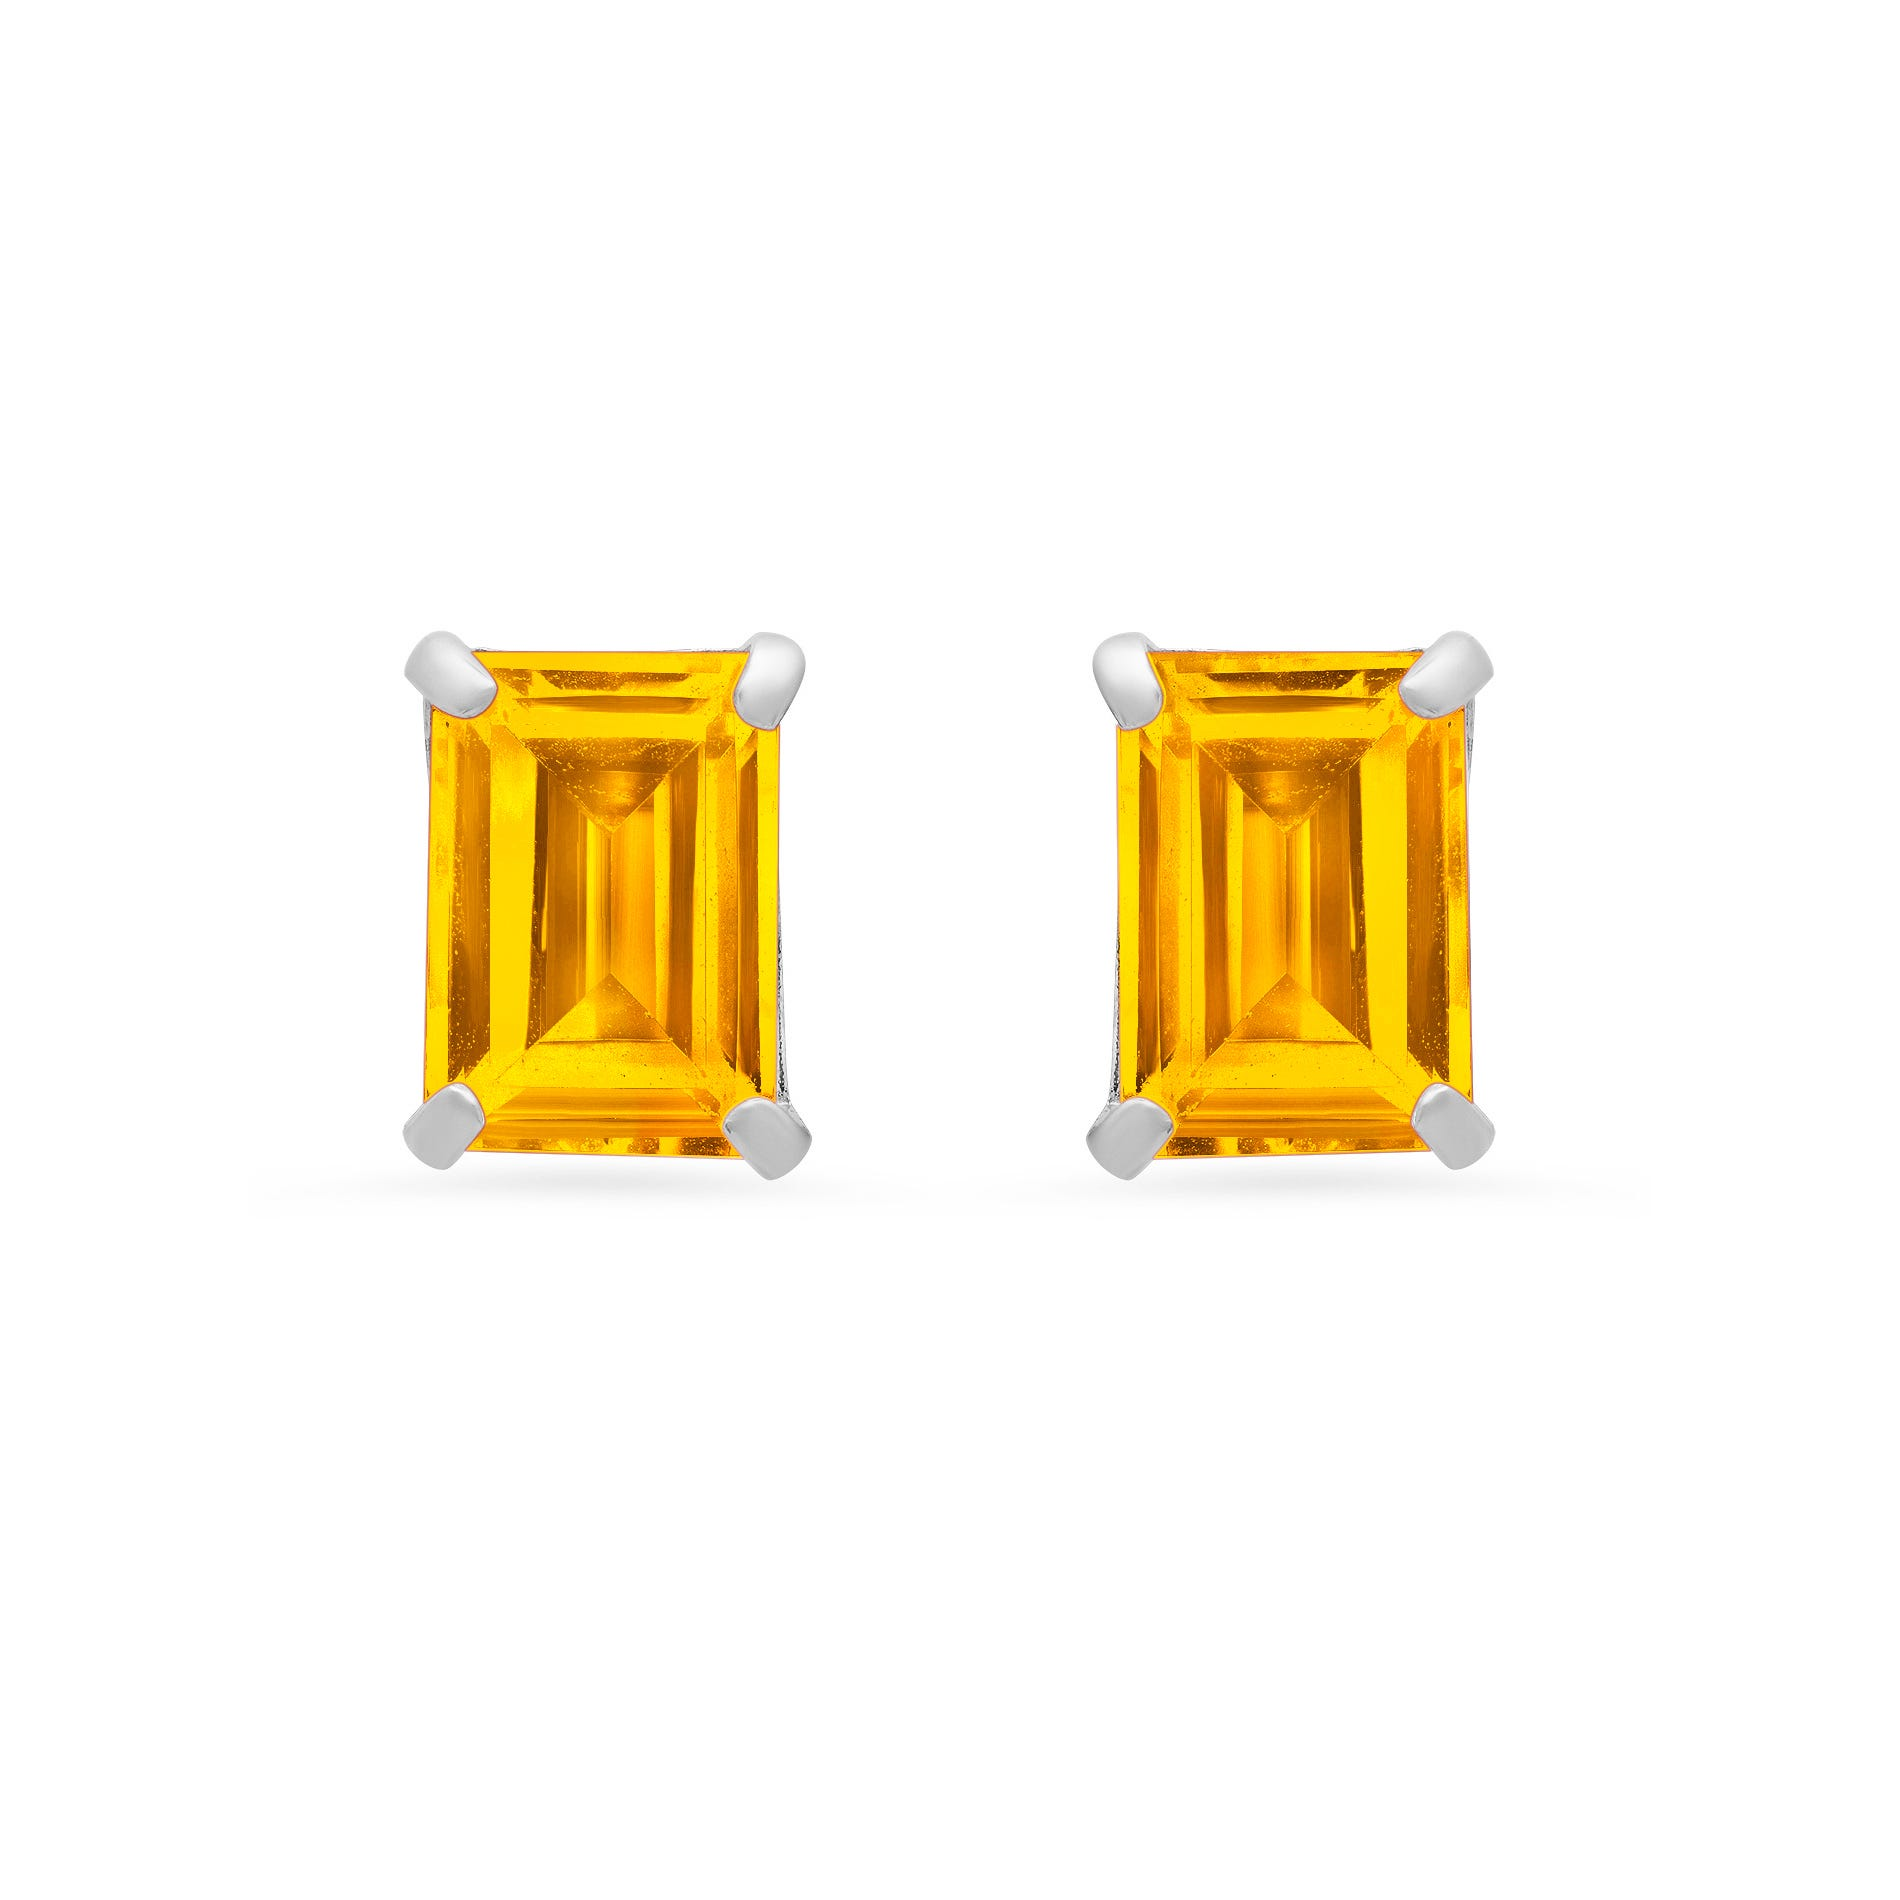 Emerald-Cut Citrine Solitaire Stud Earrings in 14k White Gold